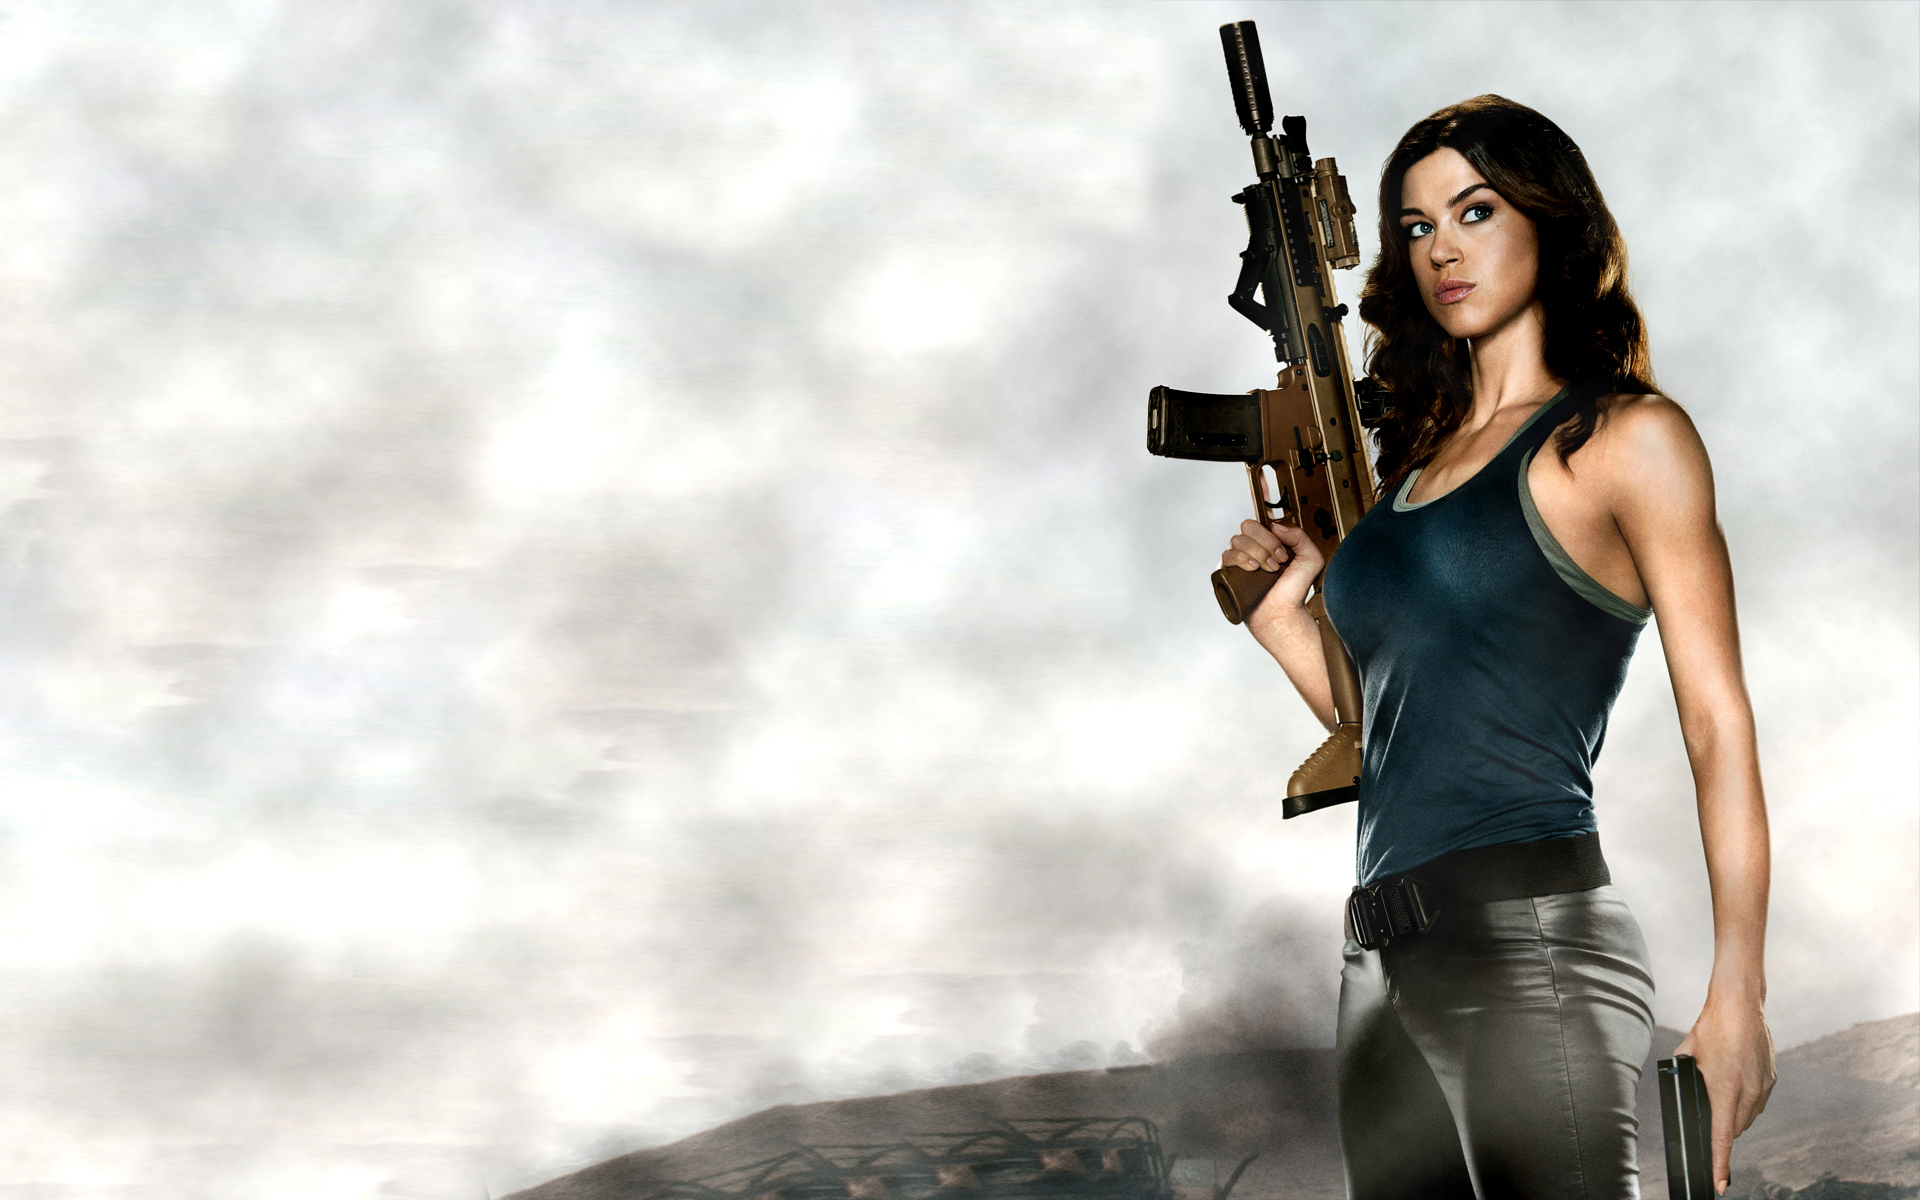 weapons guns rifles machine guns women females girls sexy sensual babes celebrities actress military wallpaper 1920x1200 22876 wallpaperup